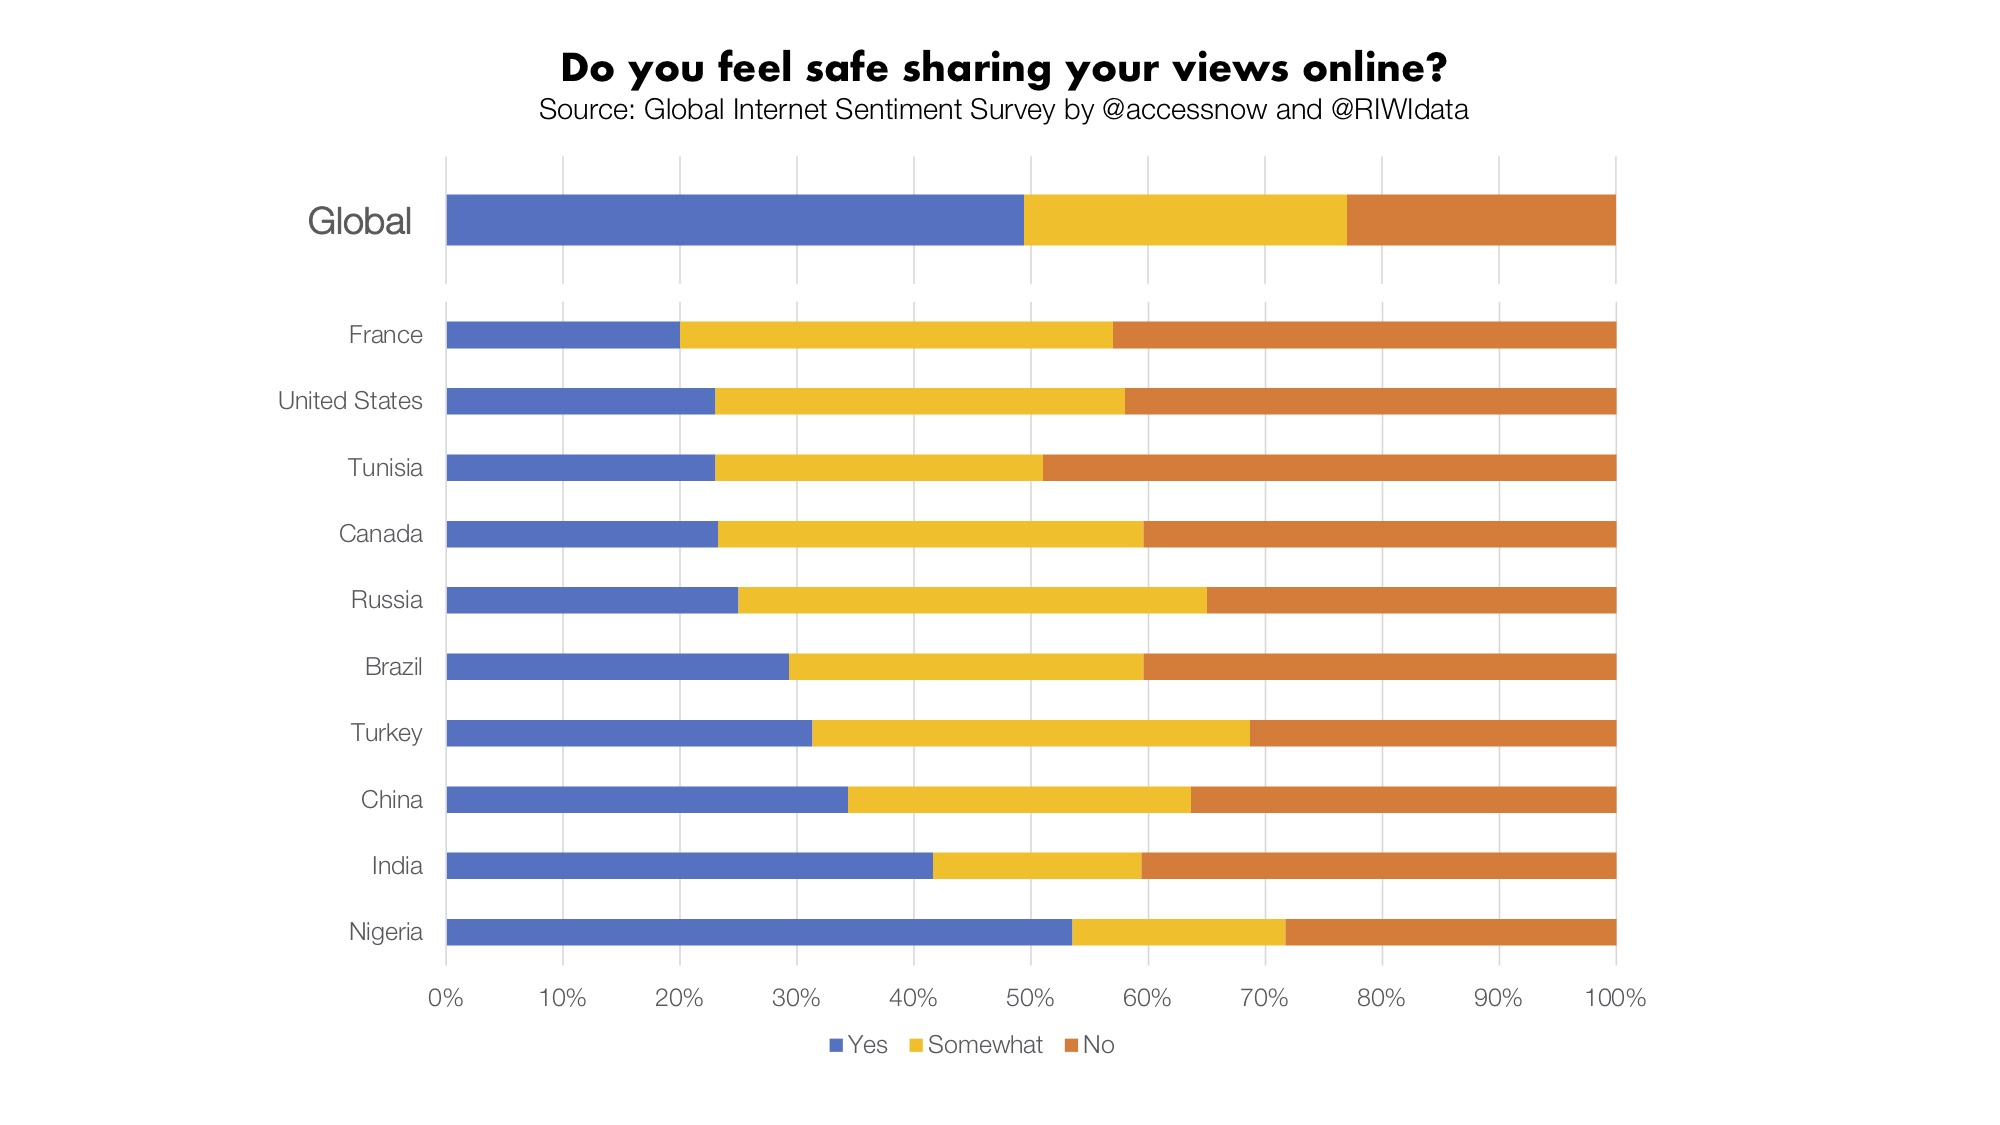 Do you feel safe sharing your views online?